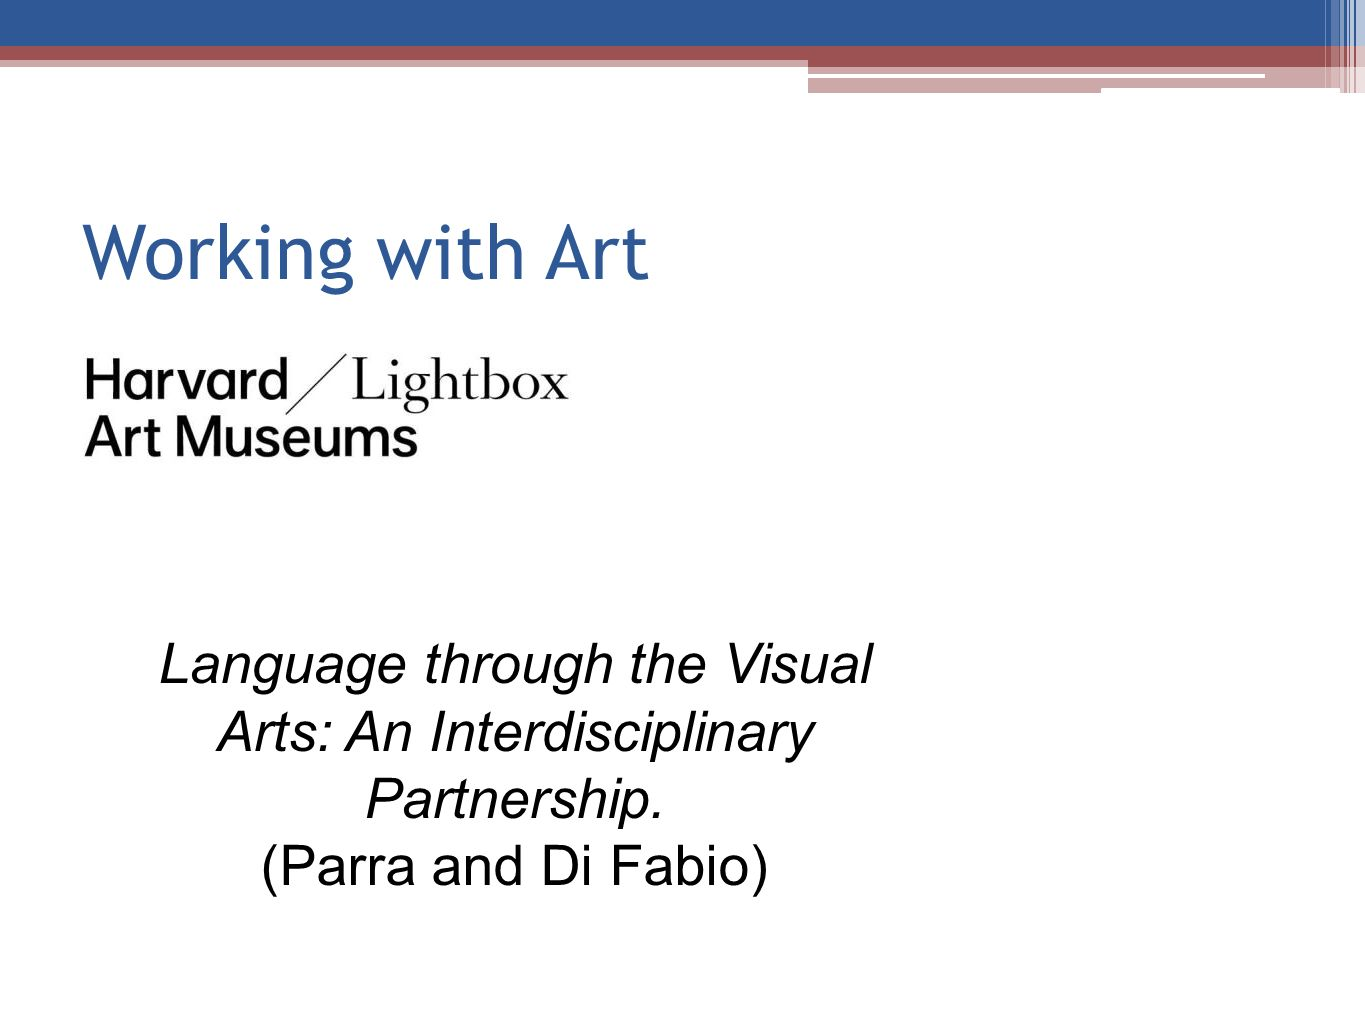 Working with Art Language through the Visual Arts: An Interdisciplinary Partnership. (Parra and Di Fabio)